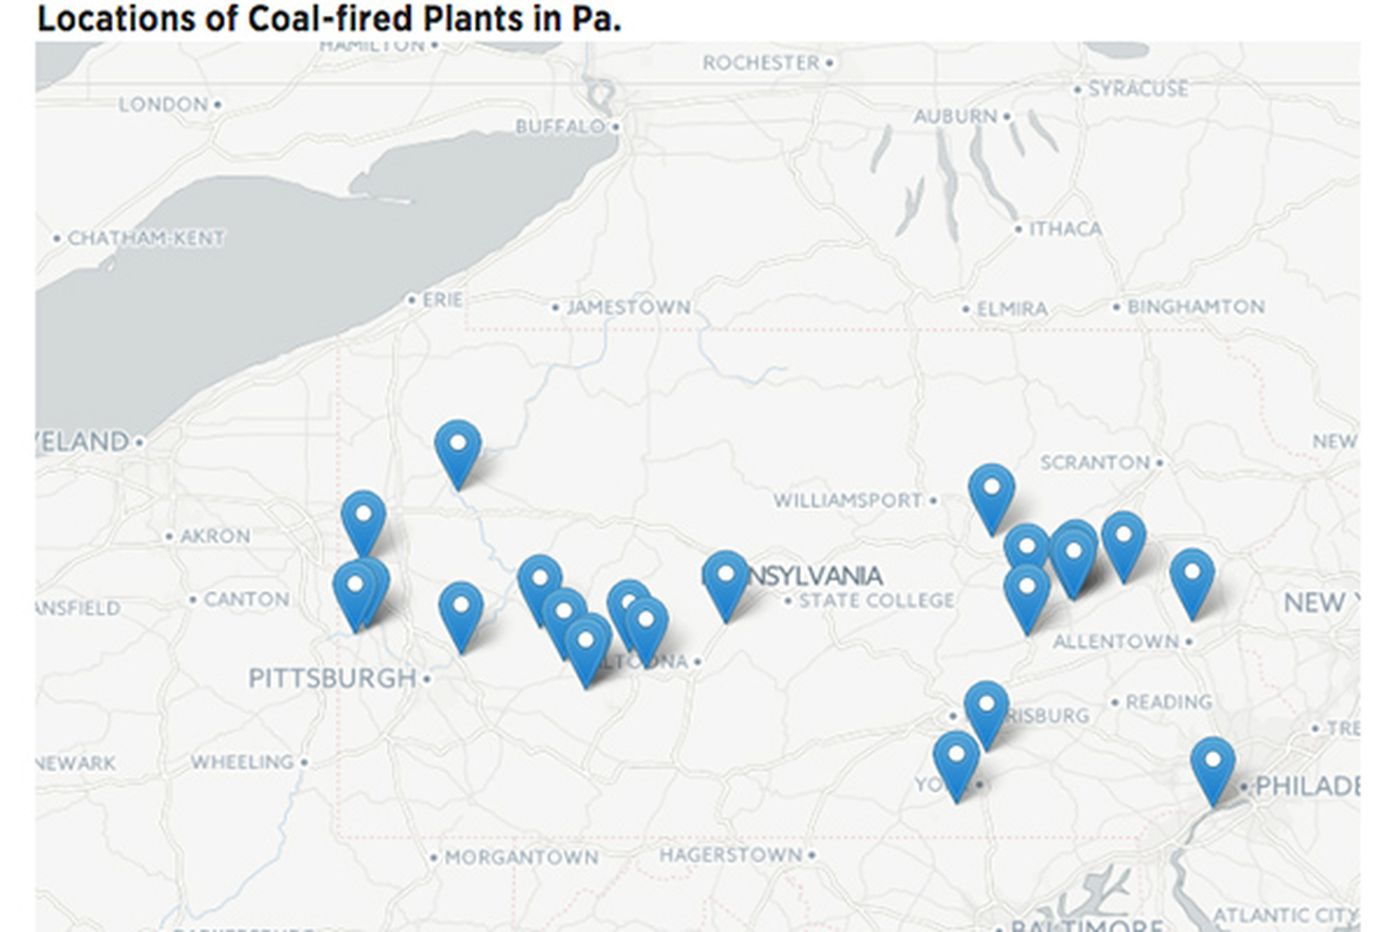 Trump Or Not Pa Coal Plants Have Long Been On The Way Out